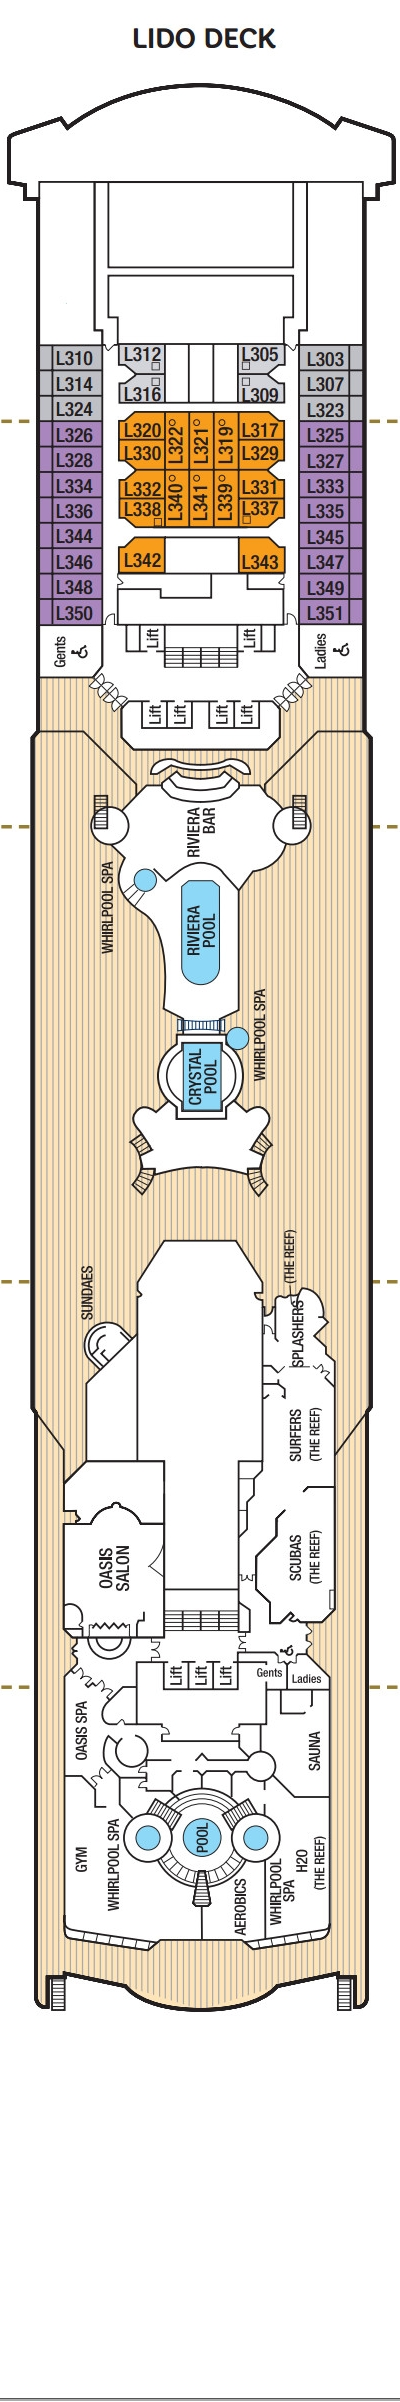 Oceana Lido Deck layout